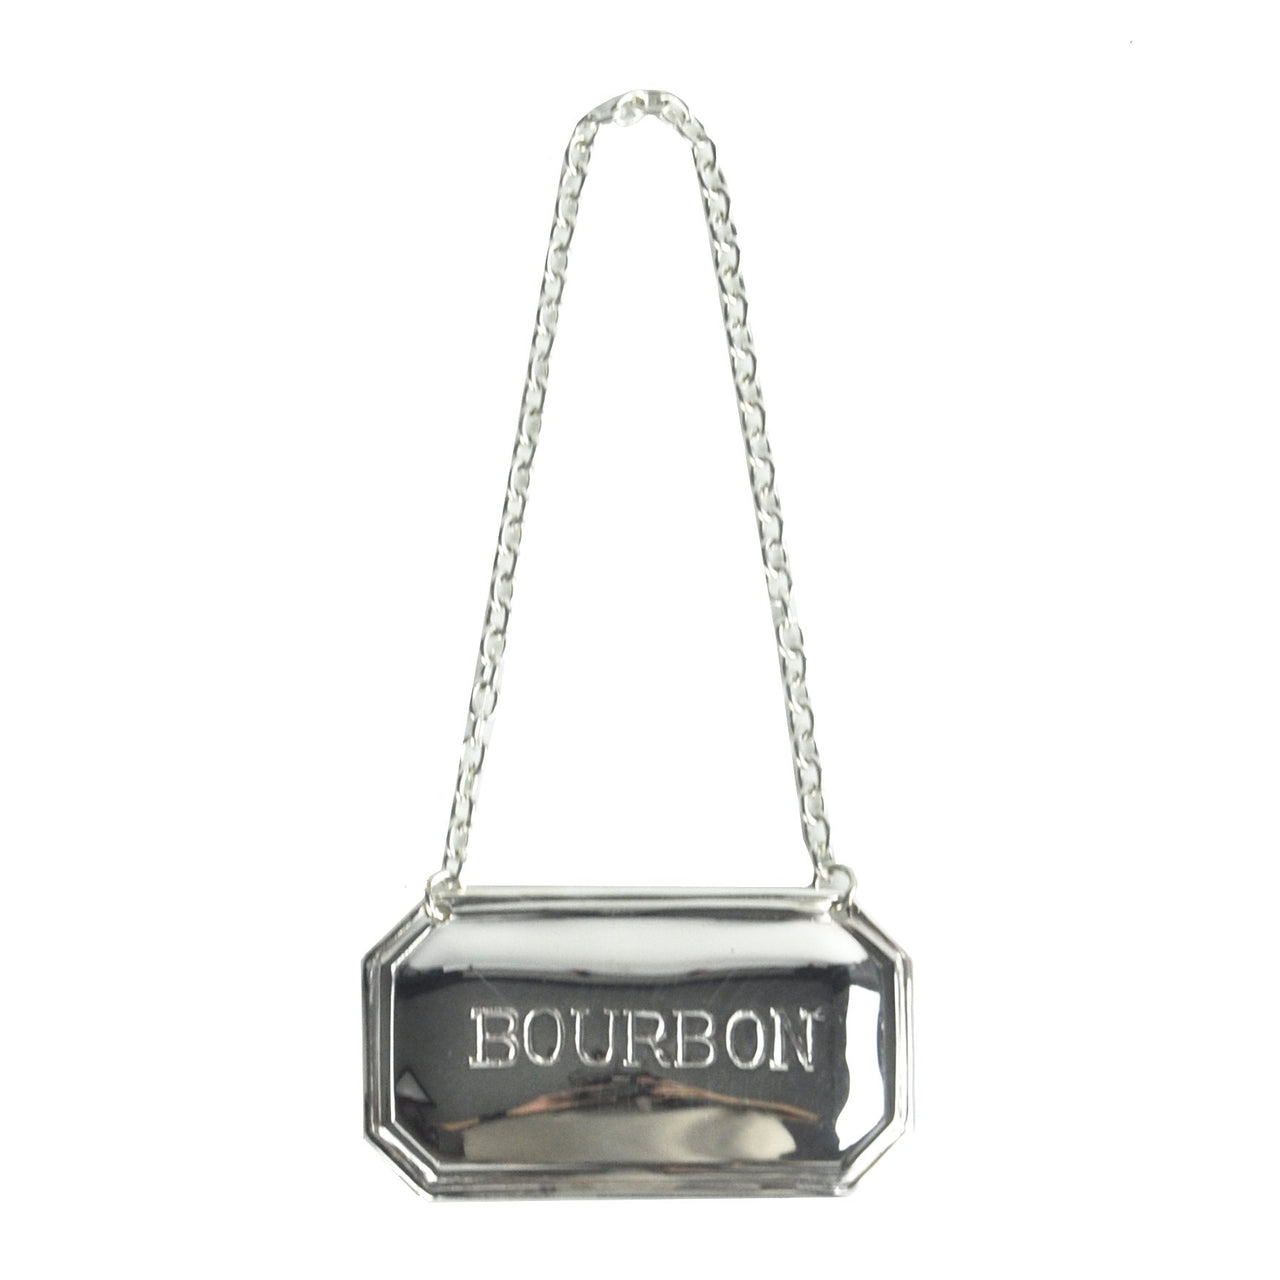 Silver Plate Bourbon Decanter Tag Label, The Hour Shop Barware